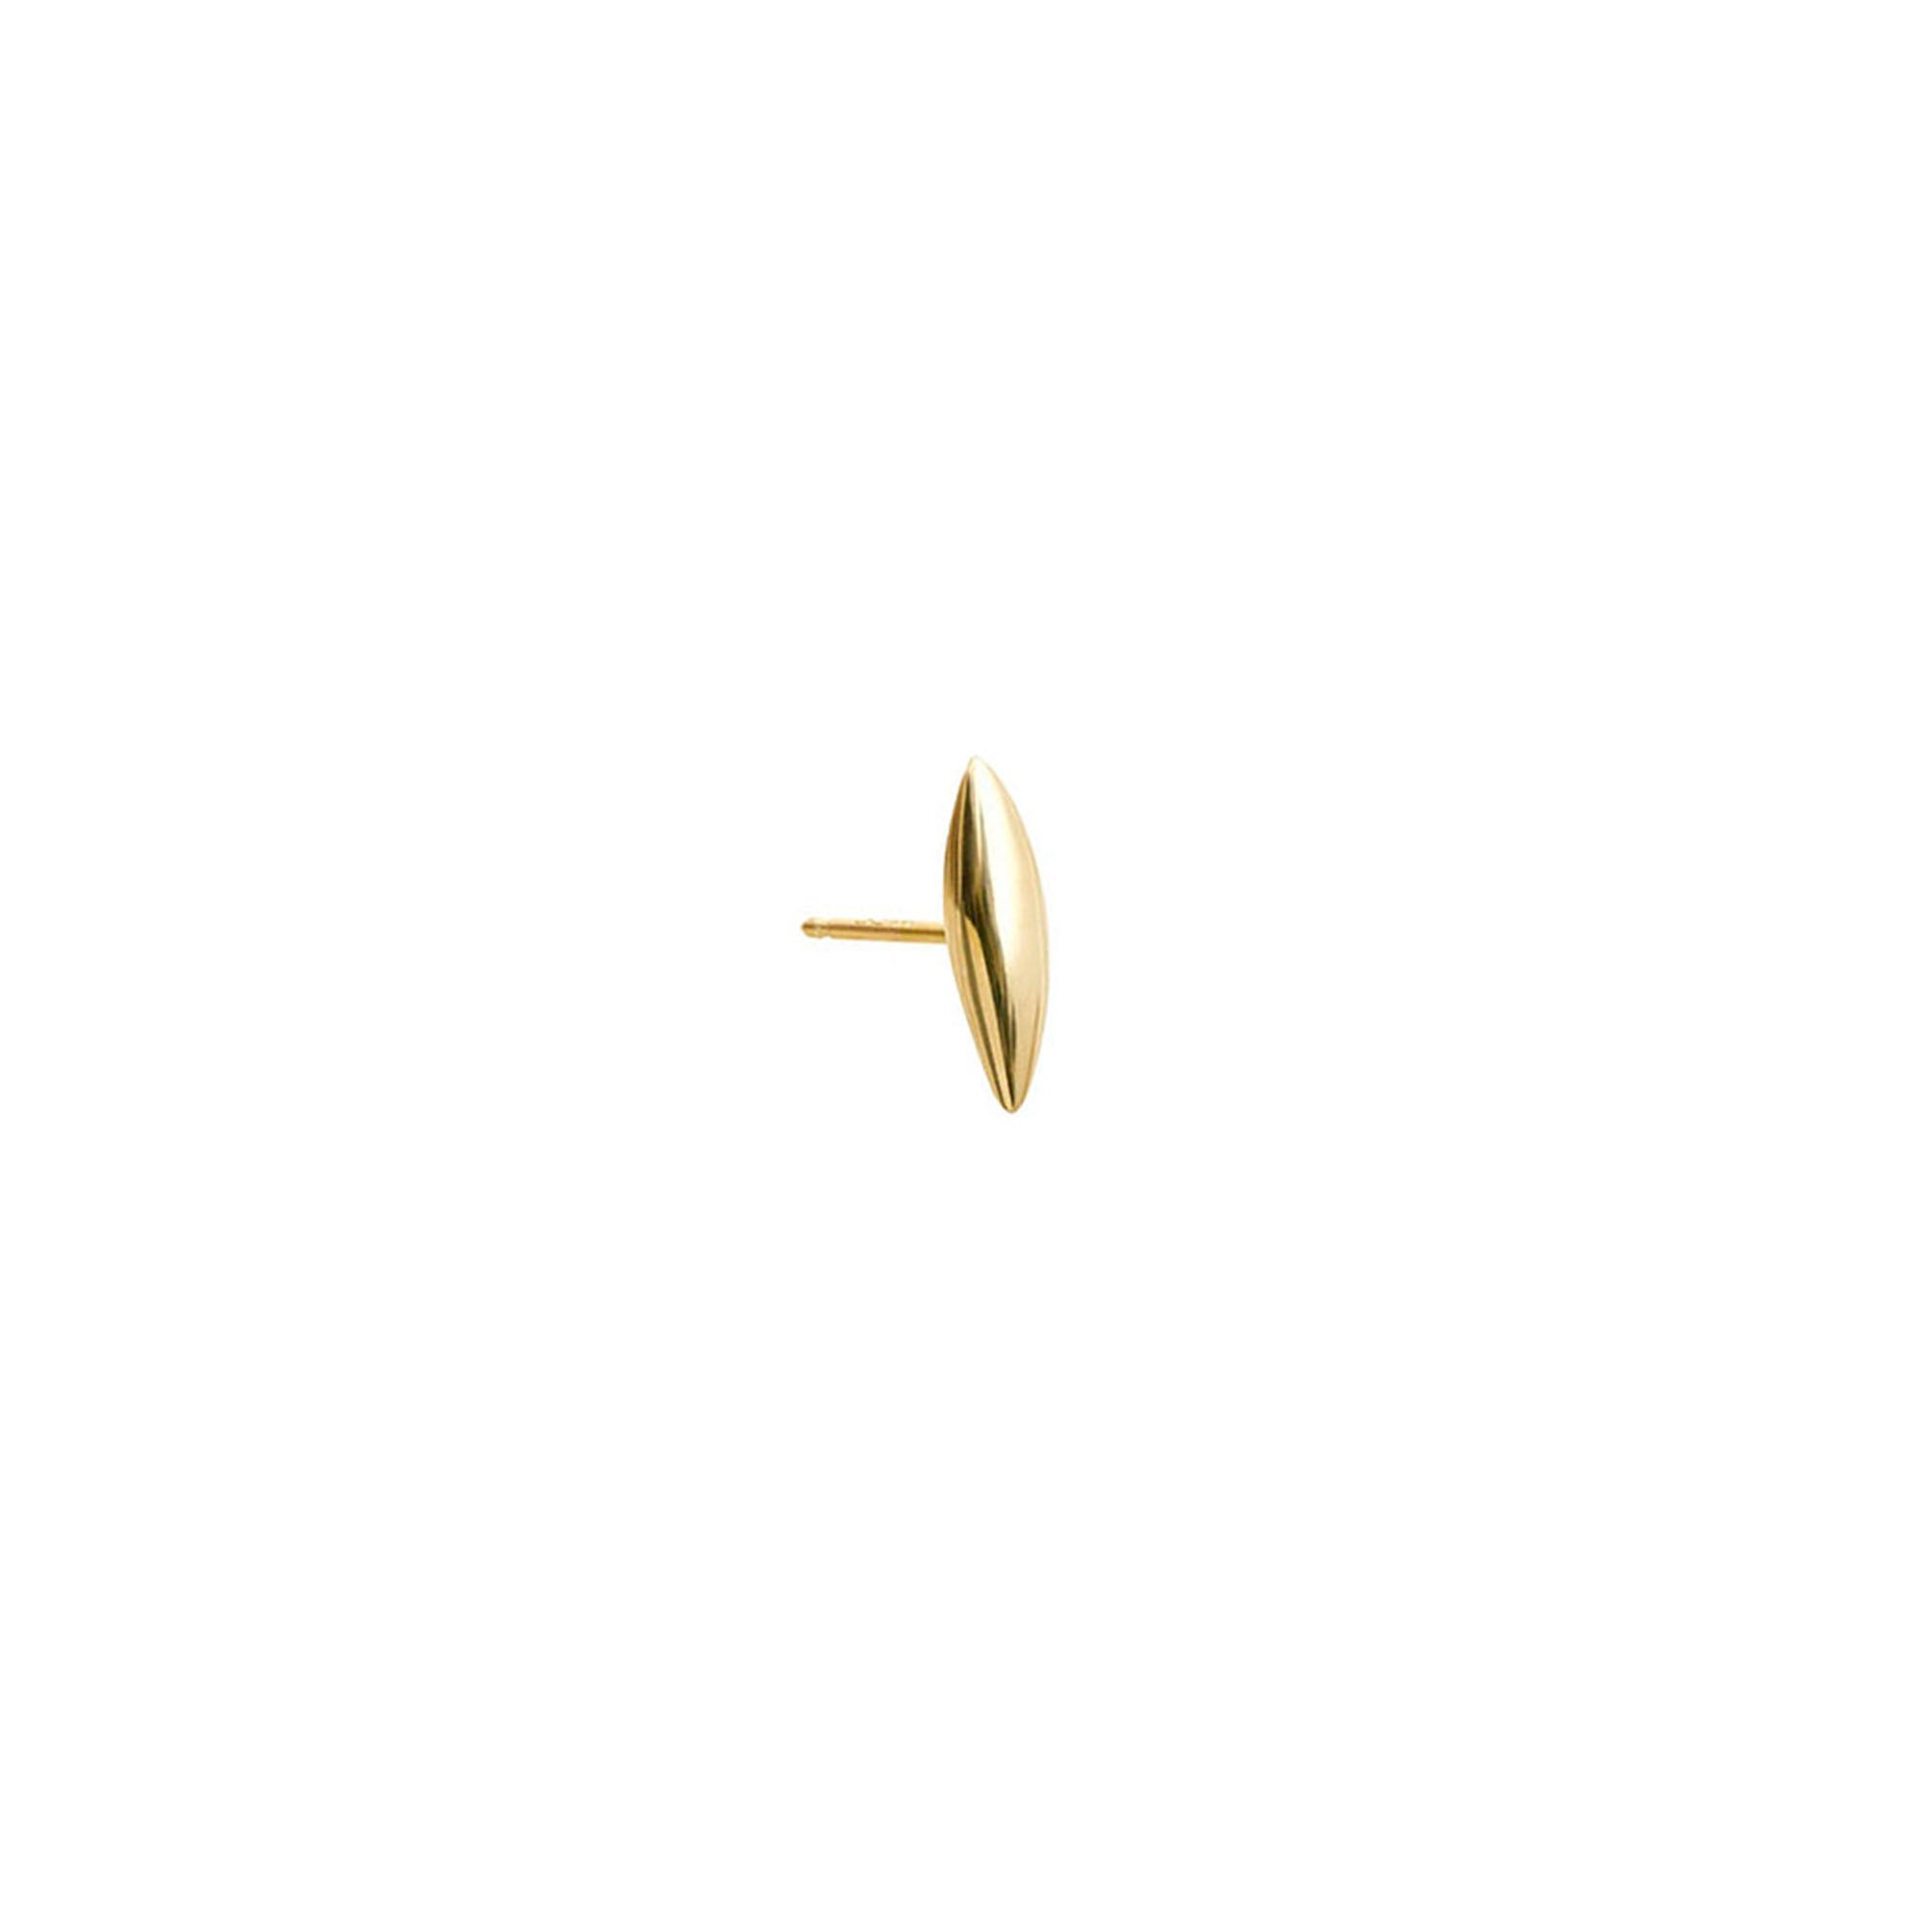 gold Small Eye Earring by Wwake for Broken English Jewelry